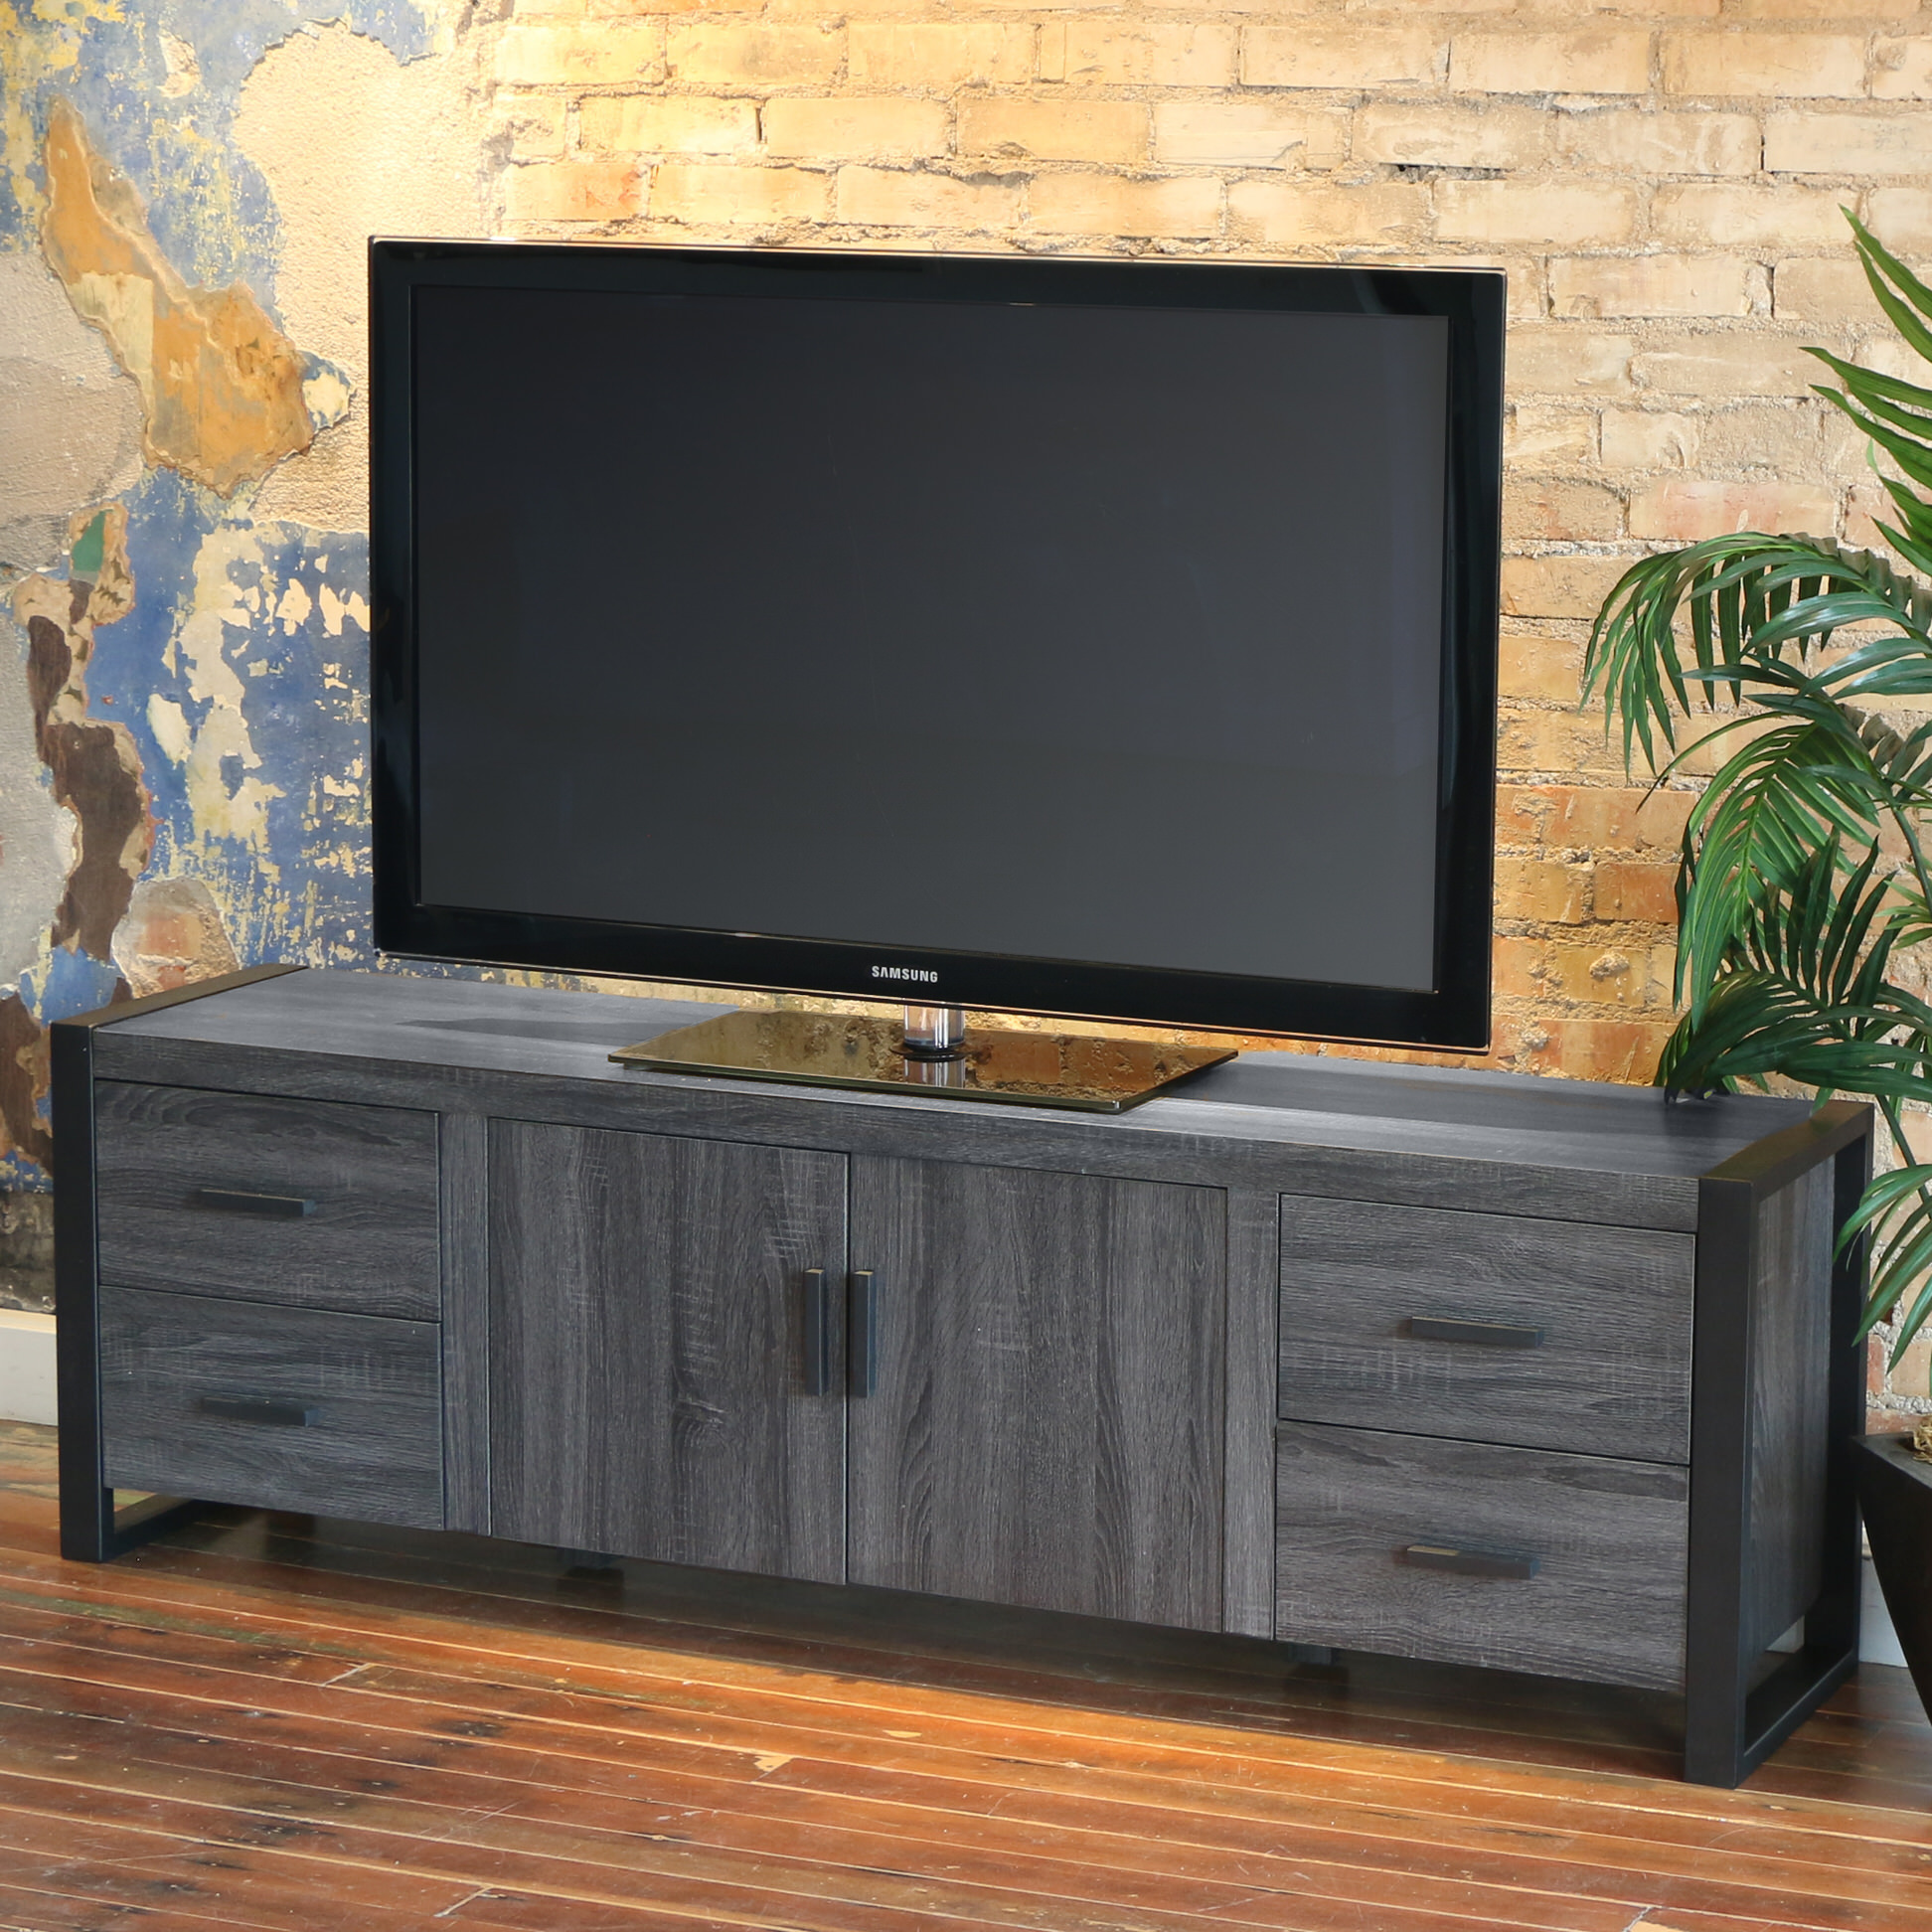 Urban Blend 70 Inch Tv Stand Charcoal Black By Walker Edison